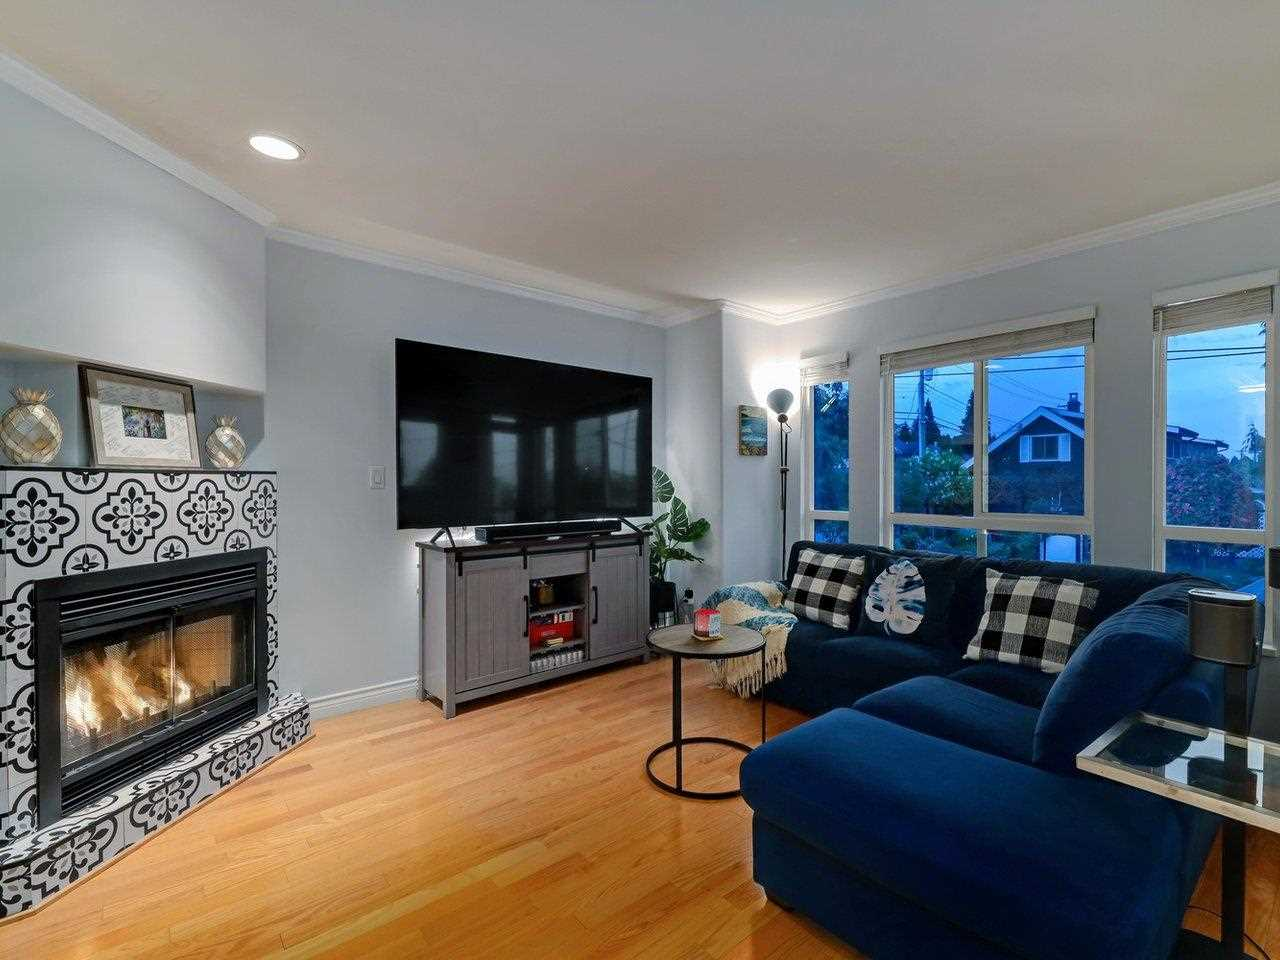 515 ST. ANDREWS AVENUE - Lower Lonsdale Townhouse for sale, 3 Bedrooms (R2590362) - #3